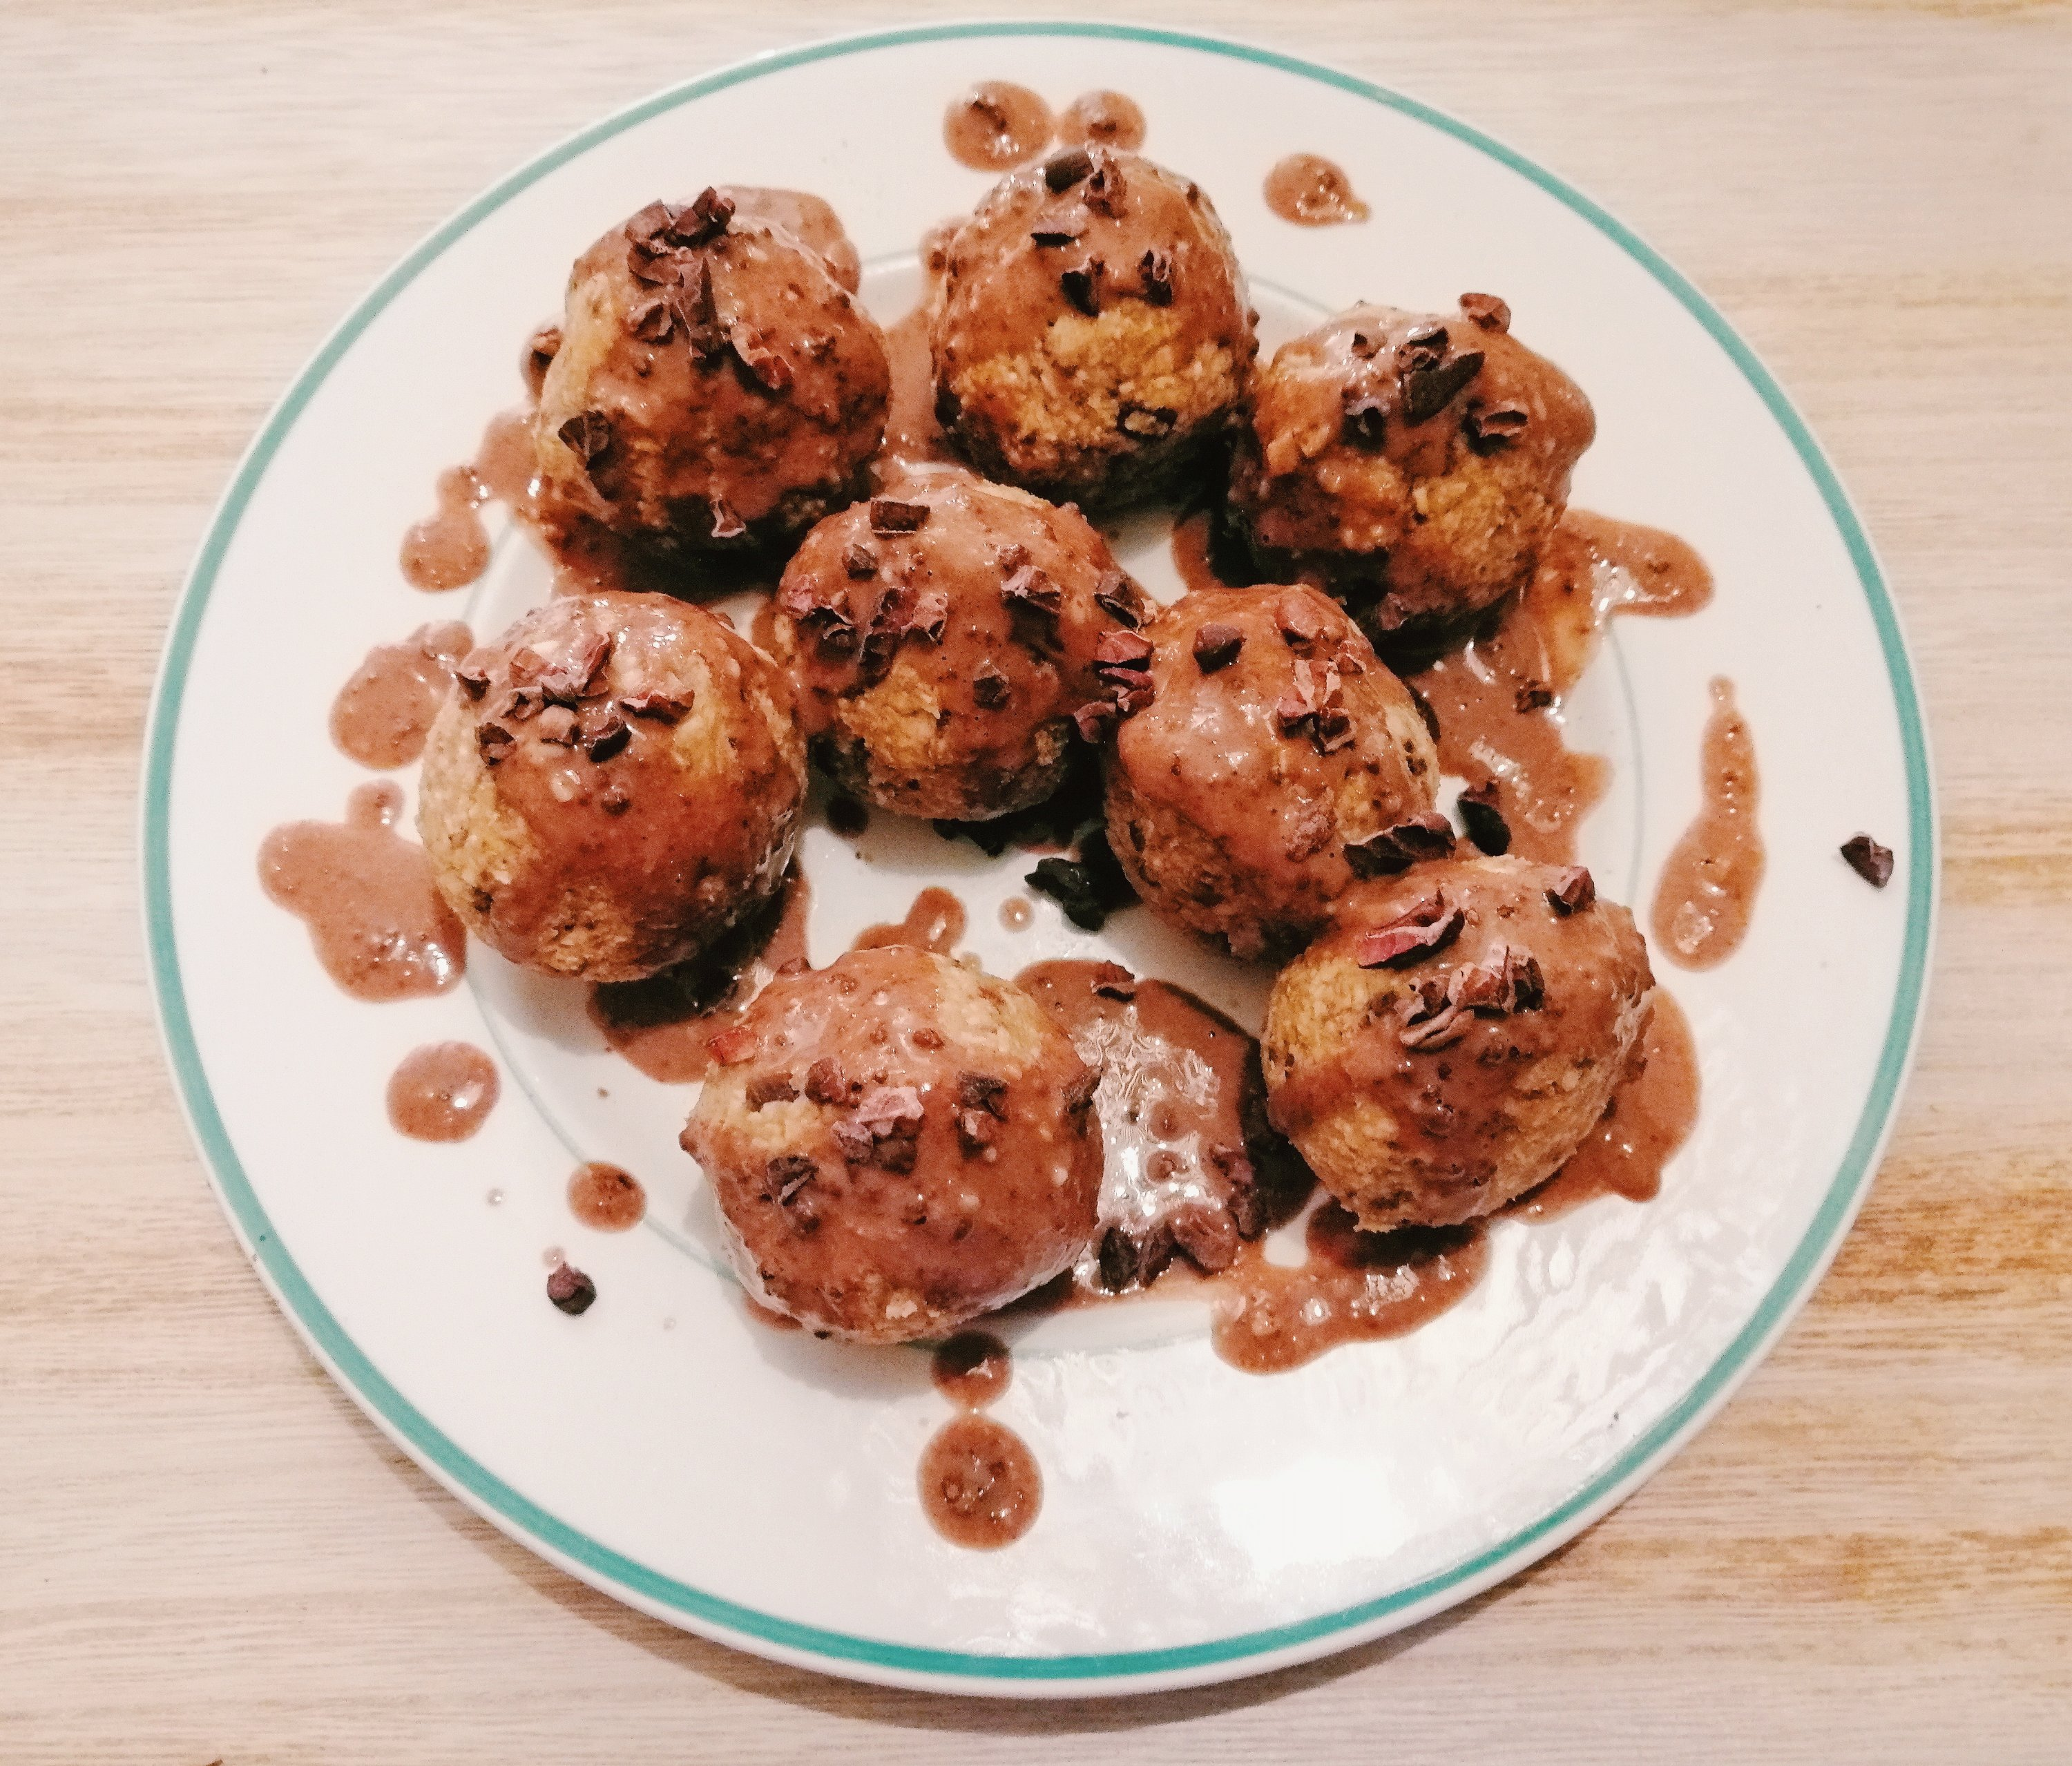 Healthy Choc Chip Cookie Dough Balls